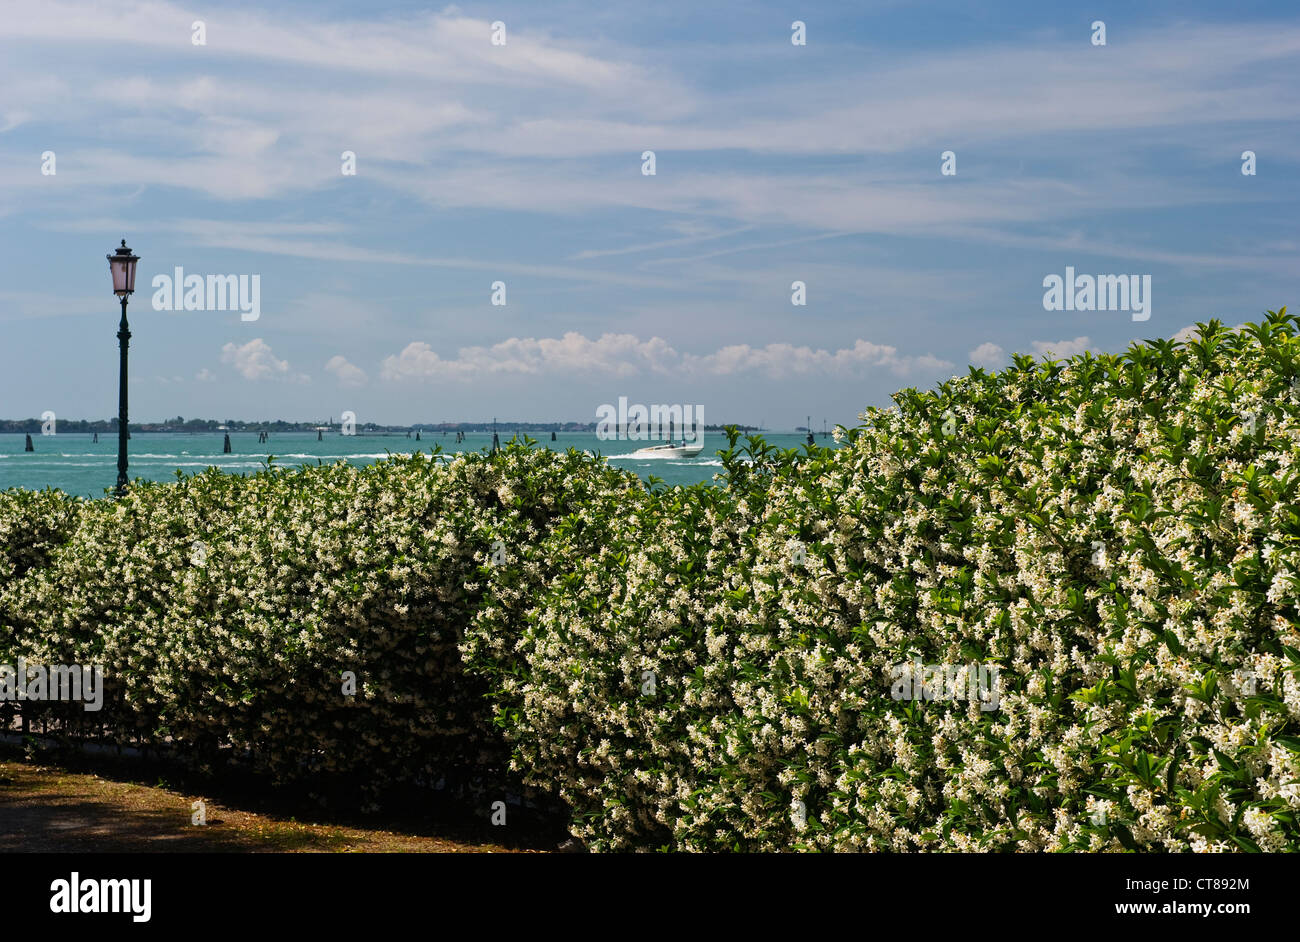 A flowering hedge of the scented trachelospermum jasminoides (Star Jasmine) in front of the Biennale Gardens (Giardini della Biennale), Venice, Italy Stock Photo